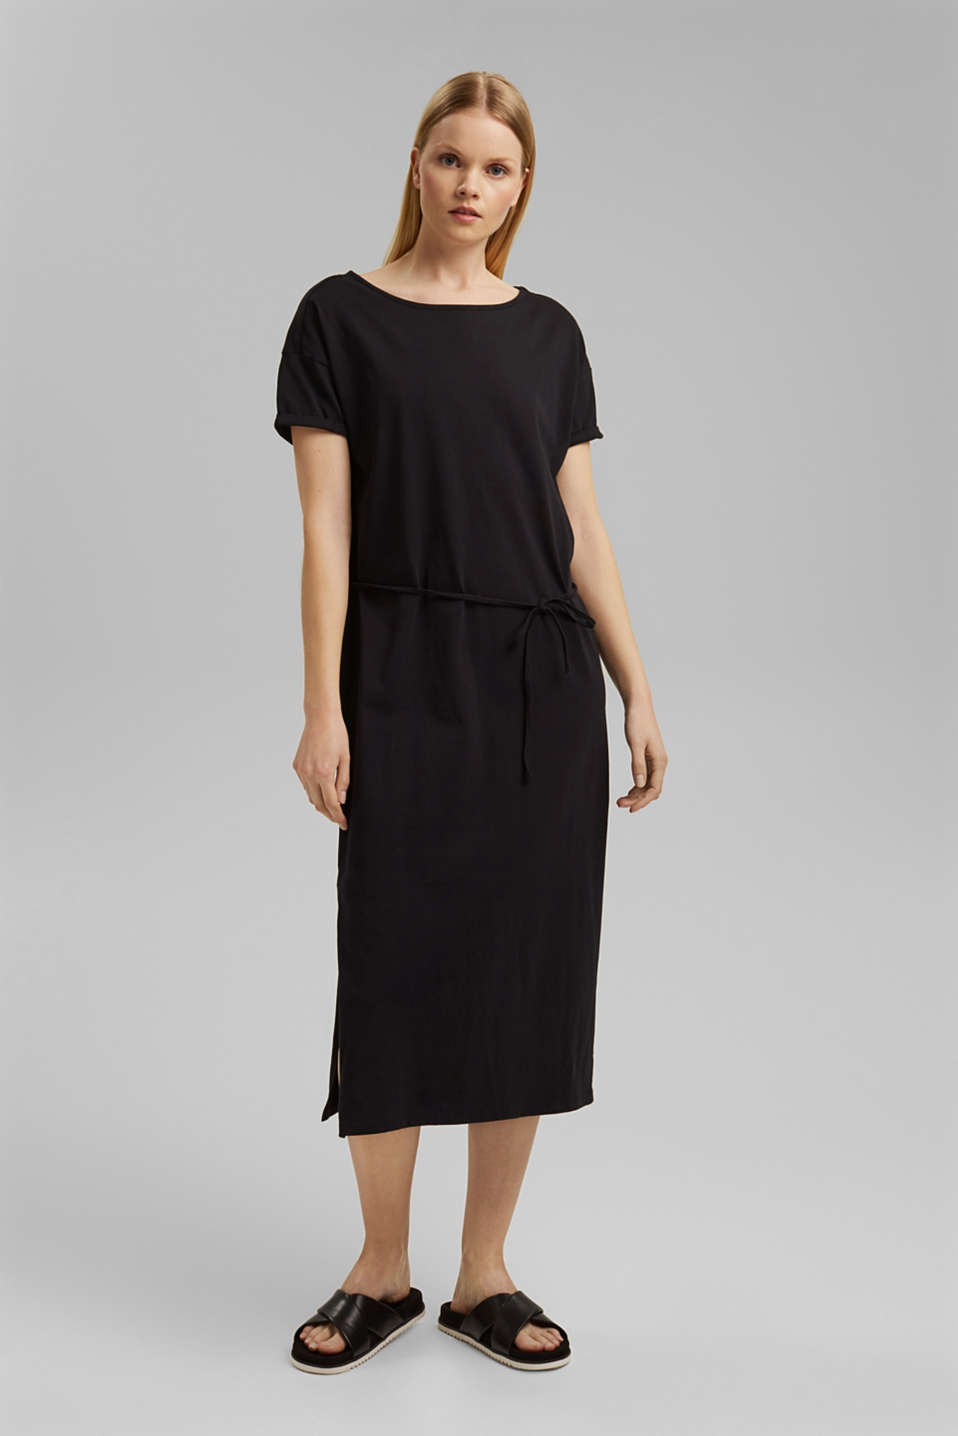 edc - Midi-length jersey dress, organic cotton